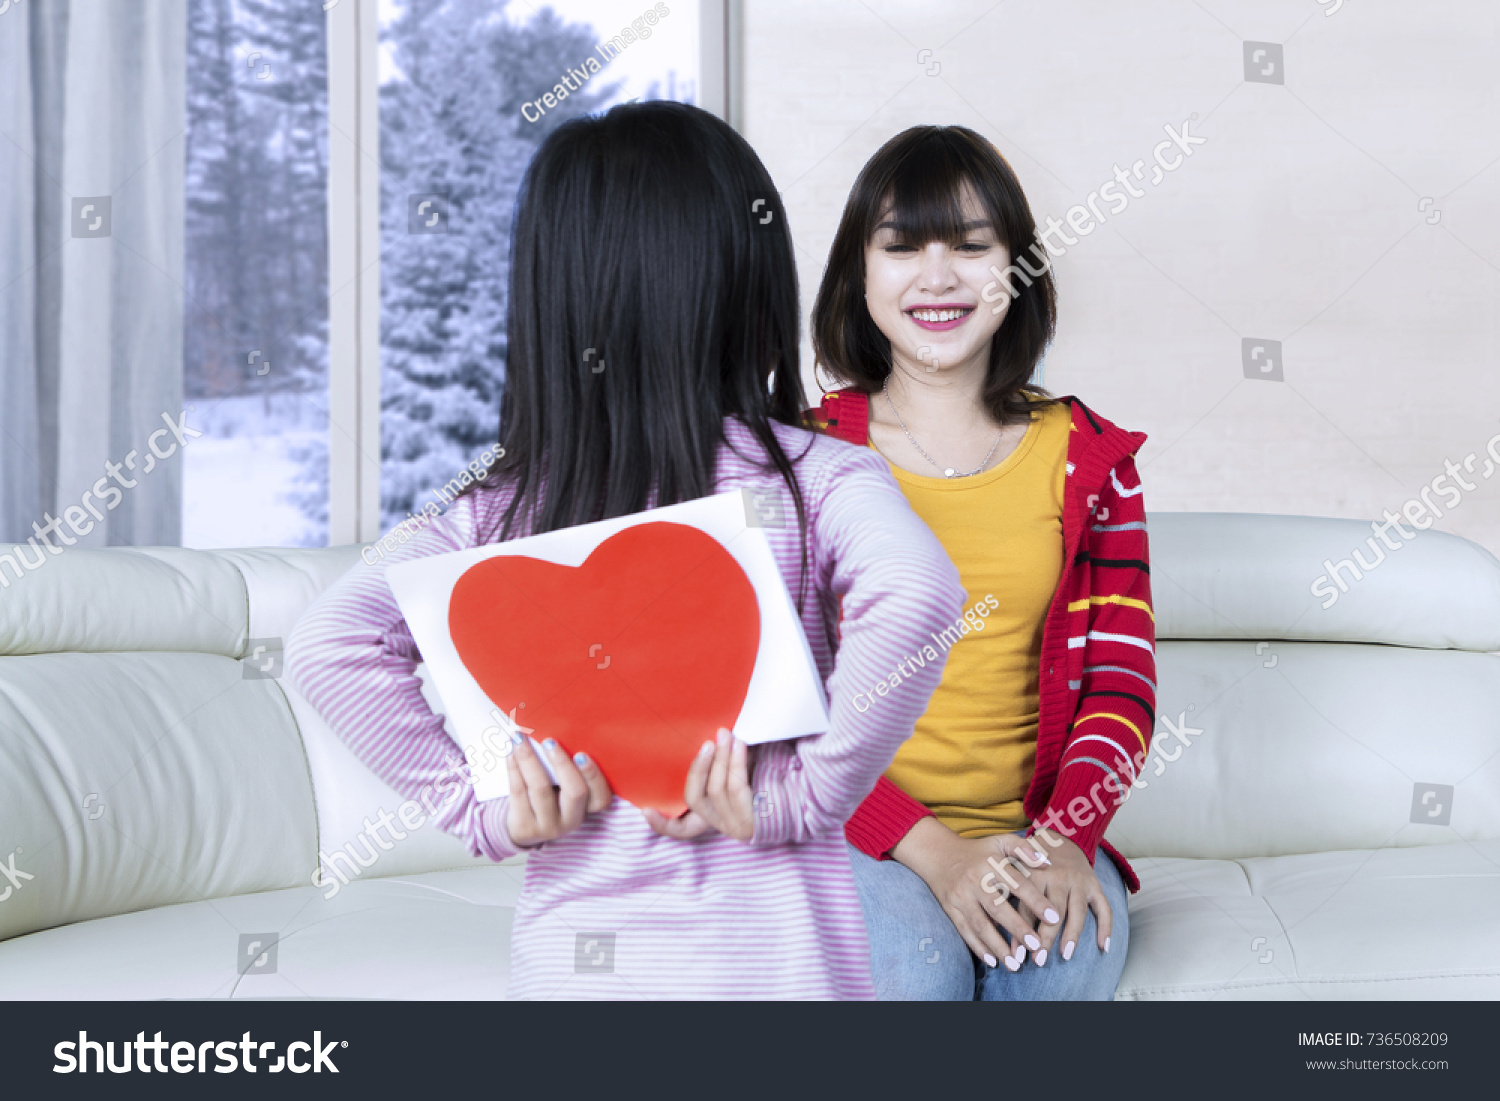 Back view little girl giving her stock photo 736508209 shutterstock back view of a little girl giving her mom a greeting card with a heart symbol buycottarizona Images